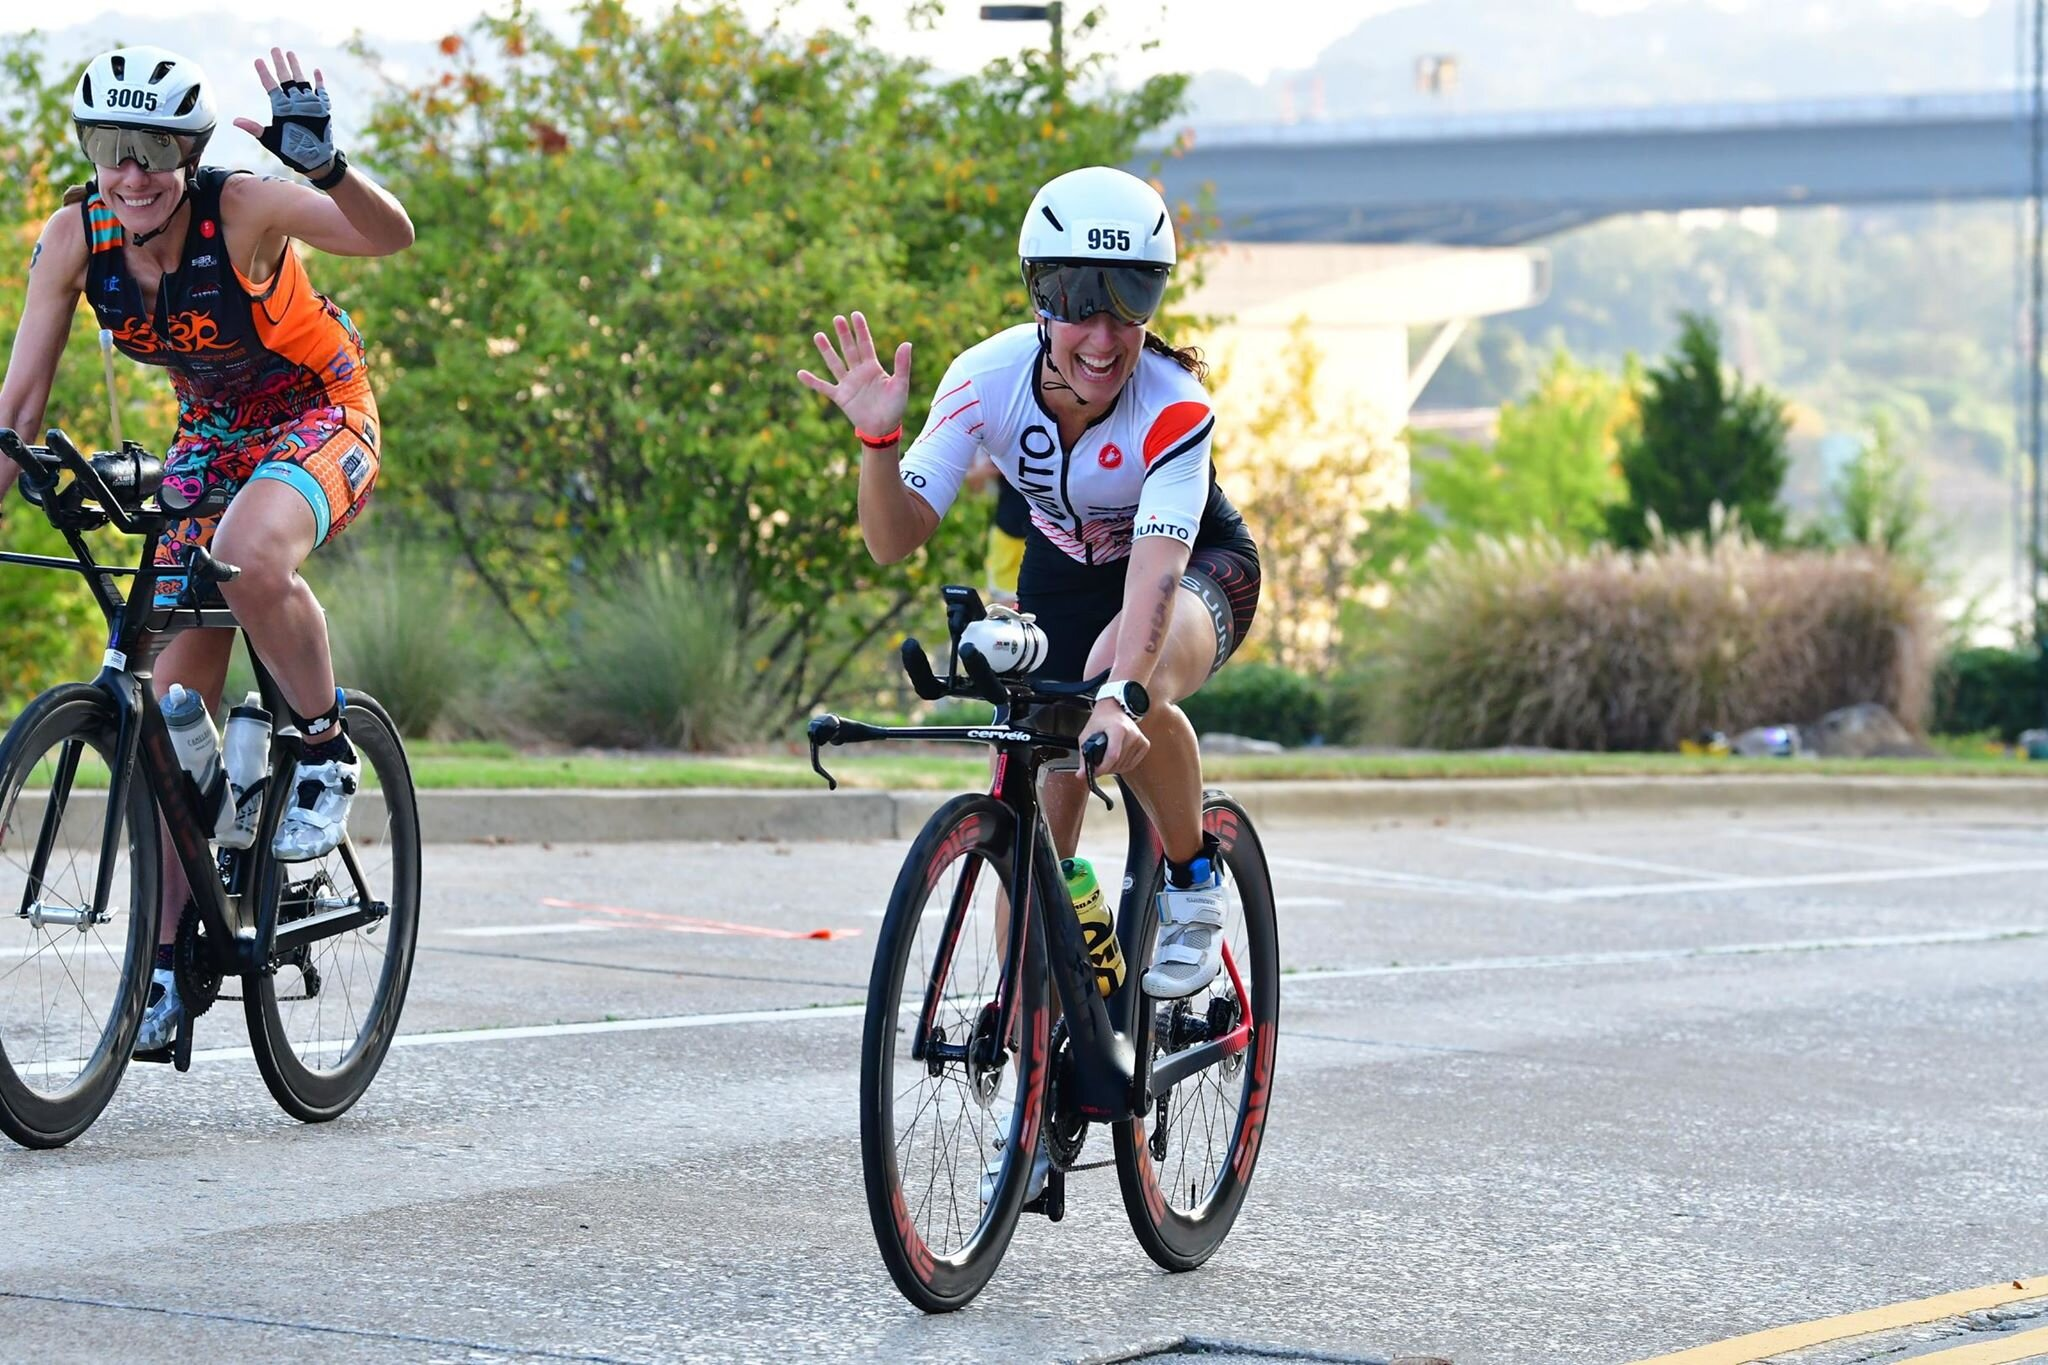 Coach_Terry_Wilson_Pursuit_of_The_Perfect_Race_IRONMAN_Chattanooga_Emily_Rollins_2.jpg